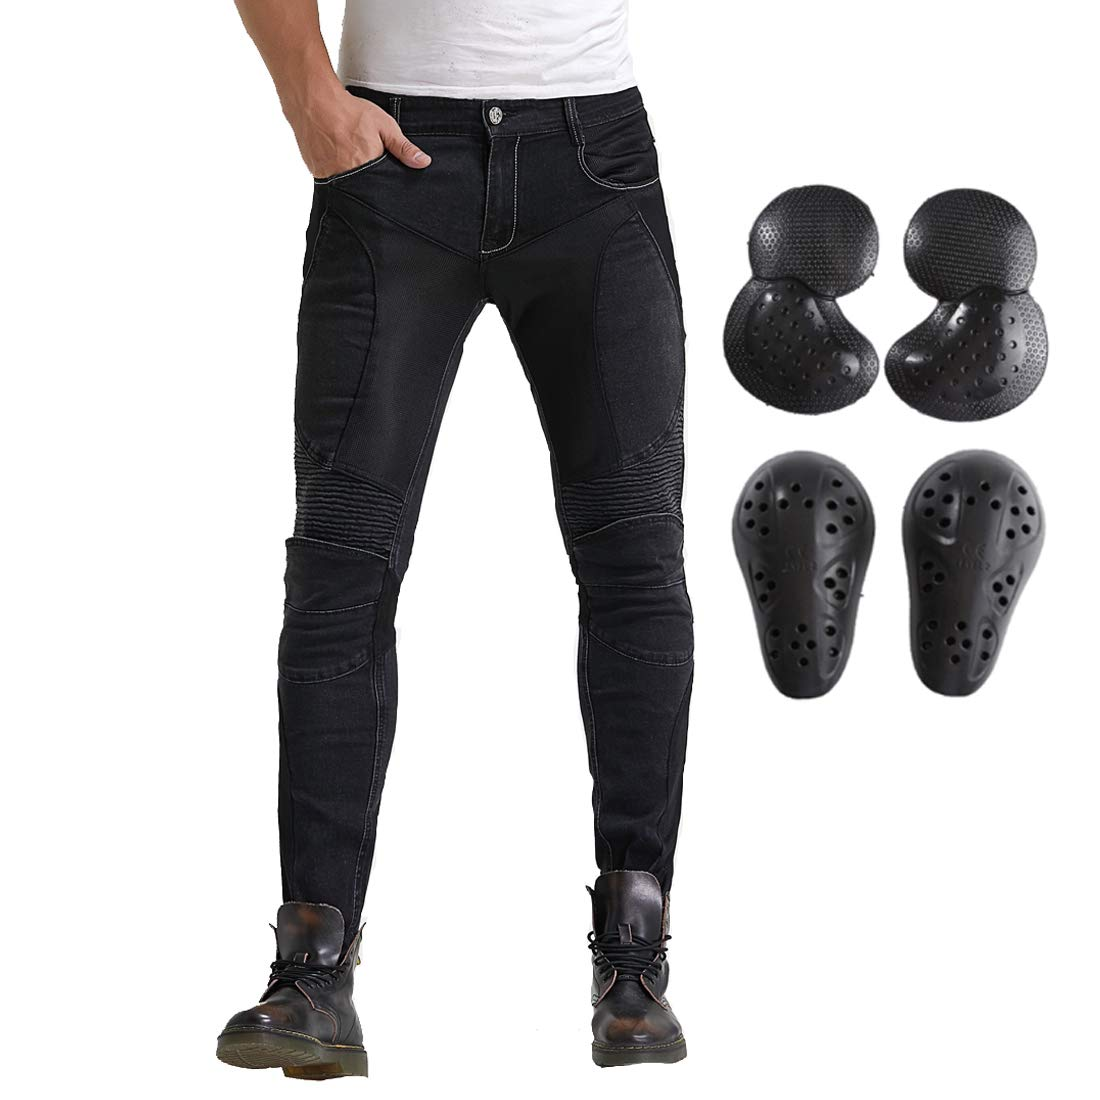 L=32, Black Summer Mesh Motorcycle Riding Jeans With Armor Motocross Racing Slim Stretch Pants